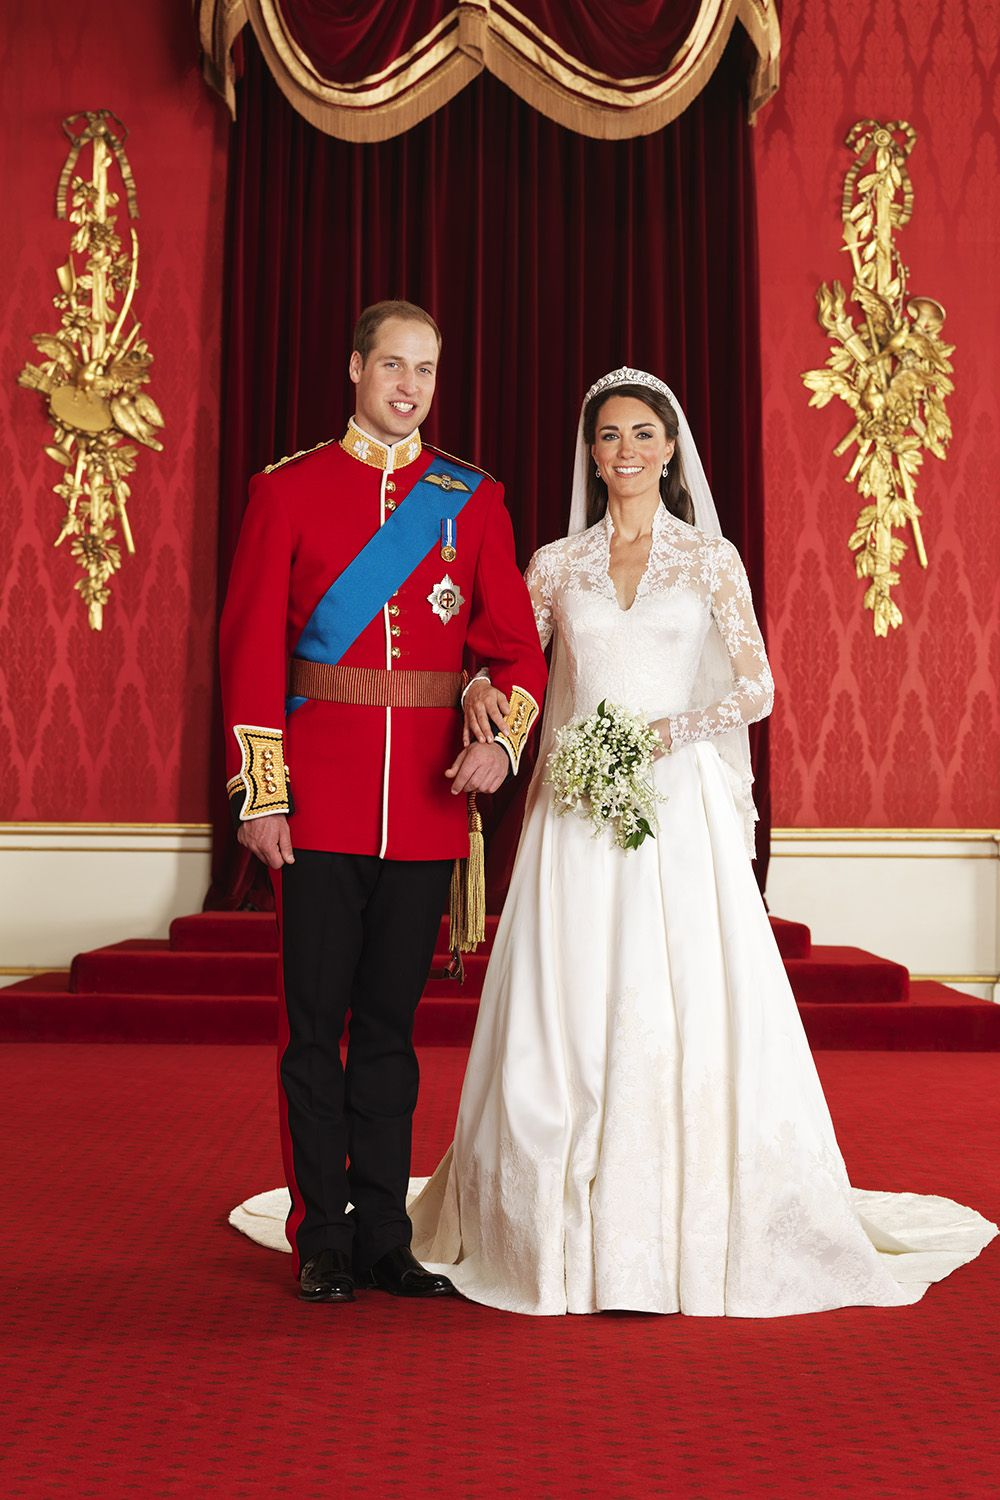 Prince william and kate pictures after wedding